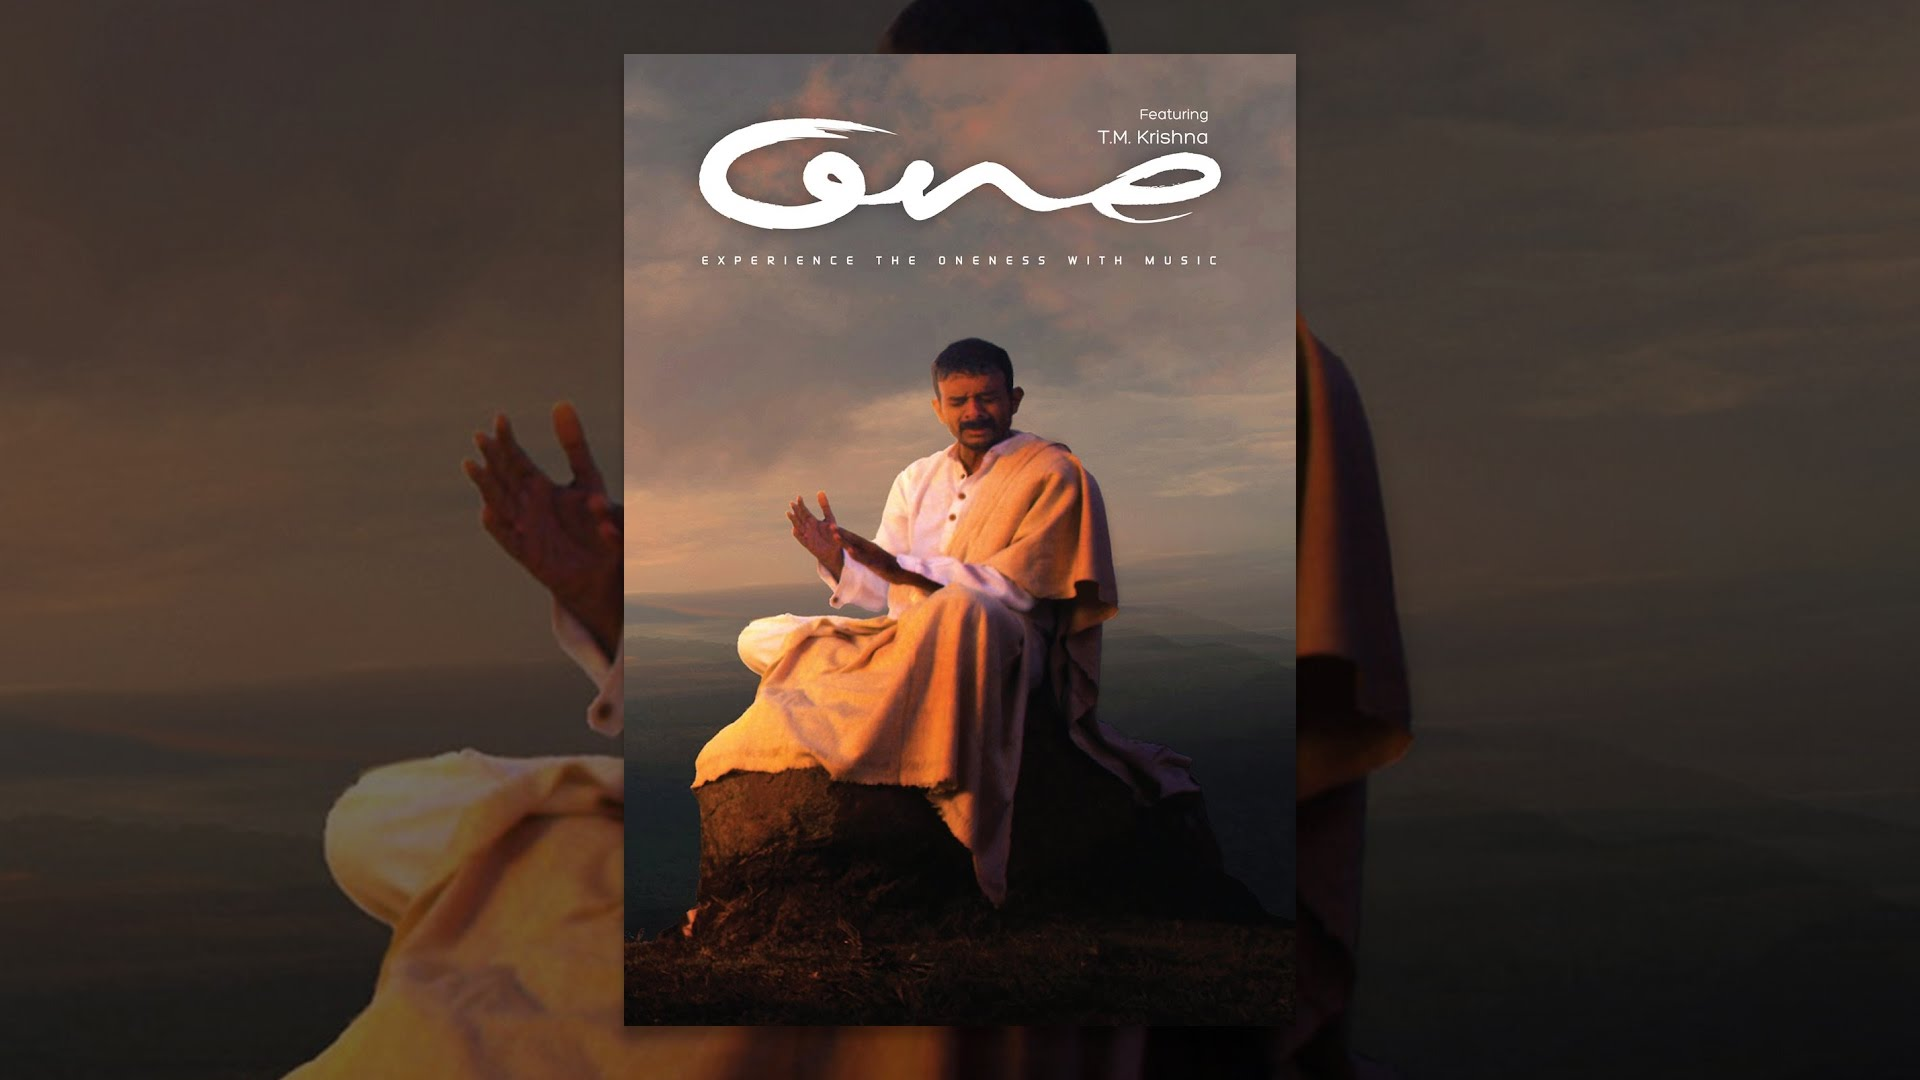 One: Experience Oneness with Music